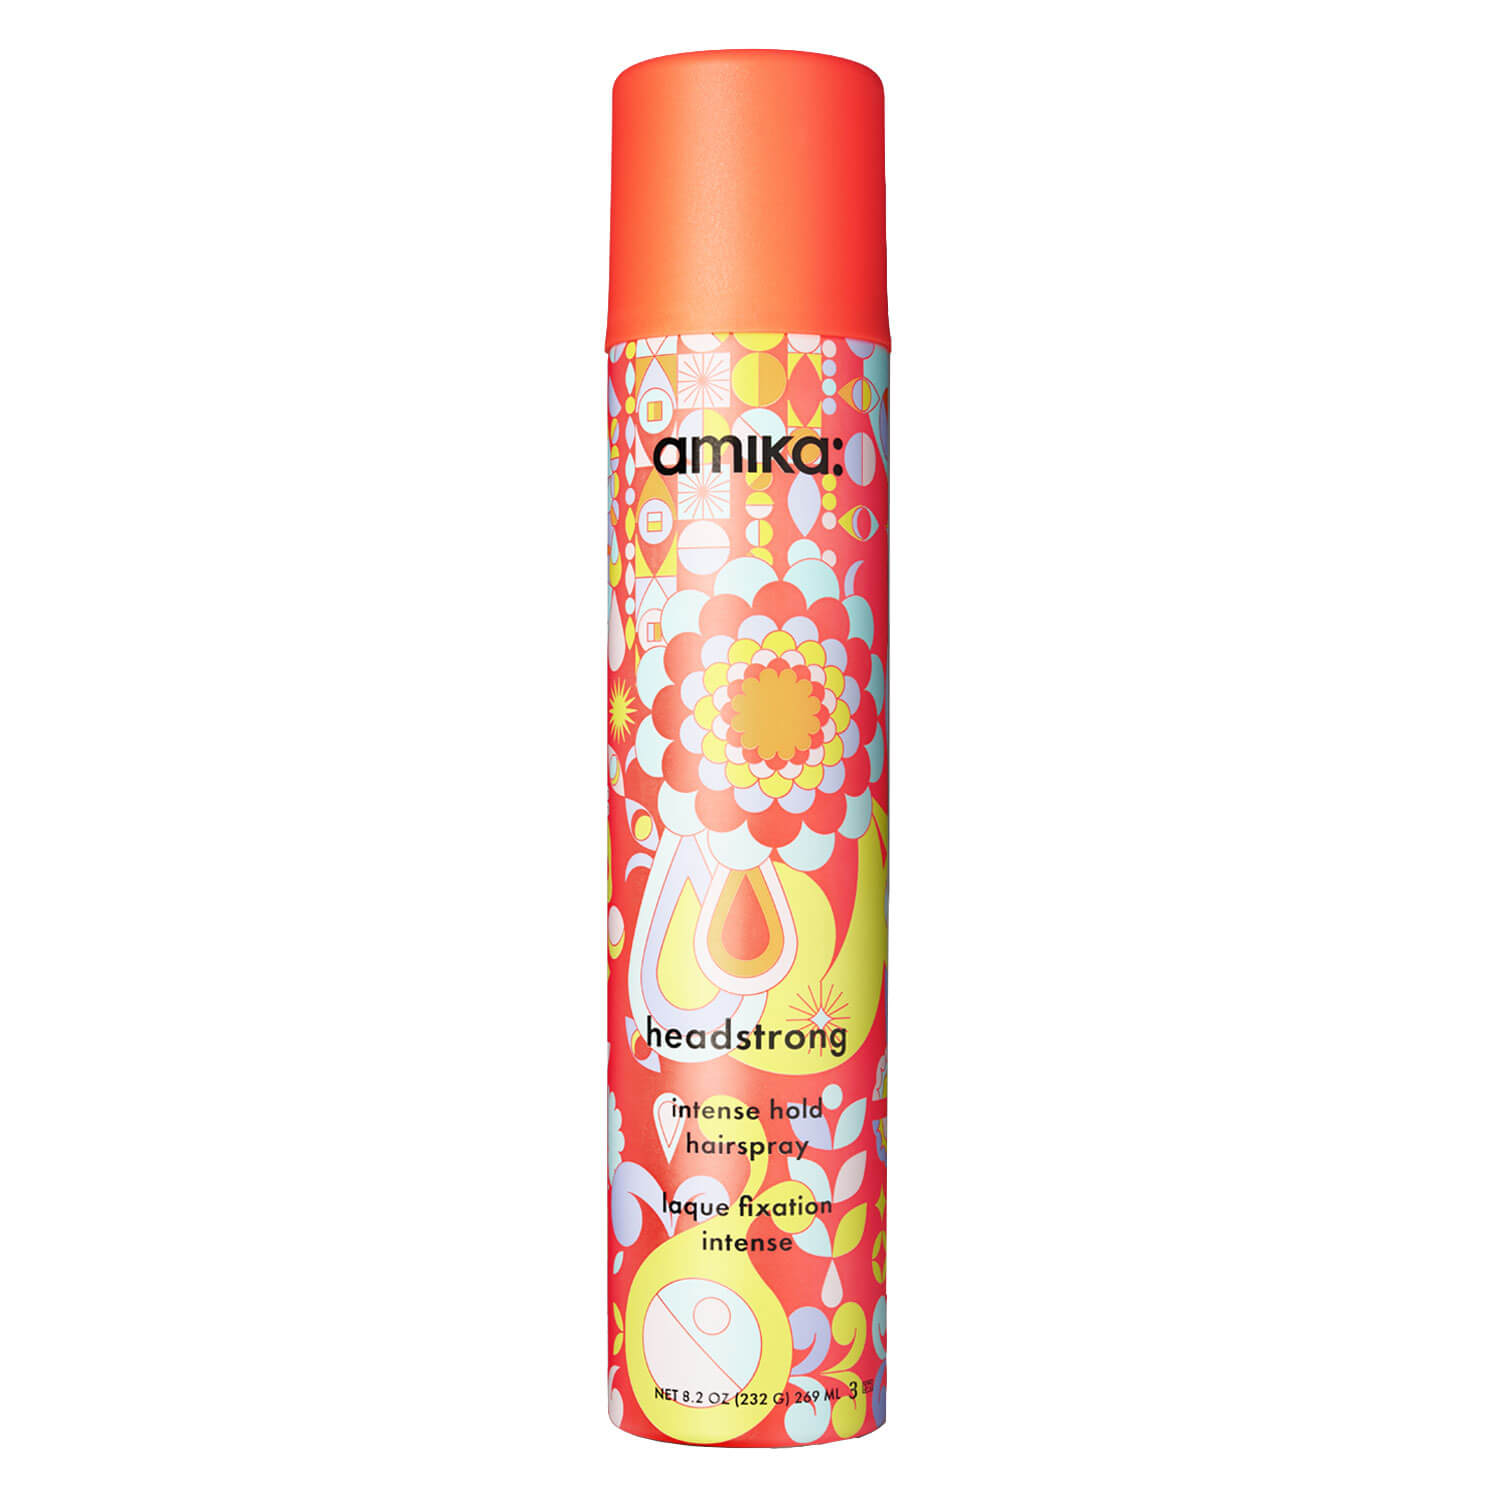 amika style - Headstrong Intense Hold Hairspray